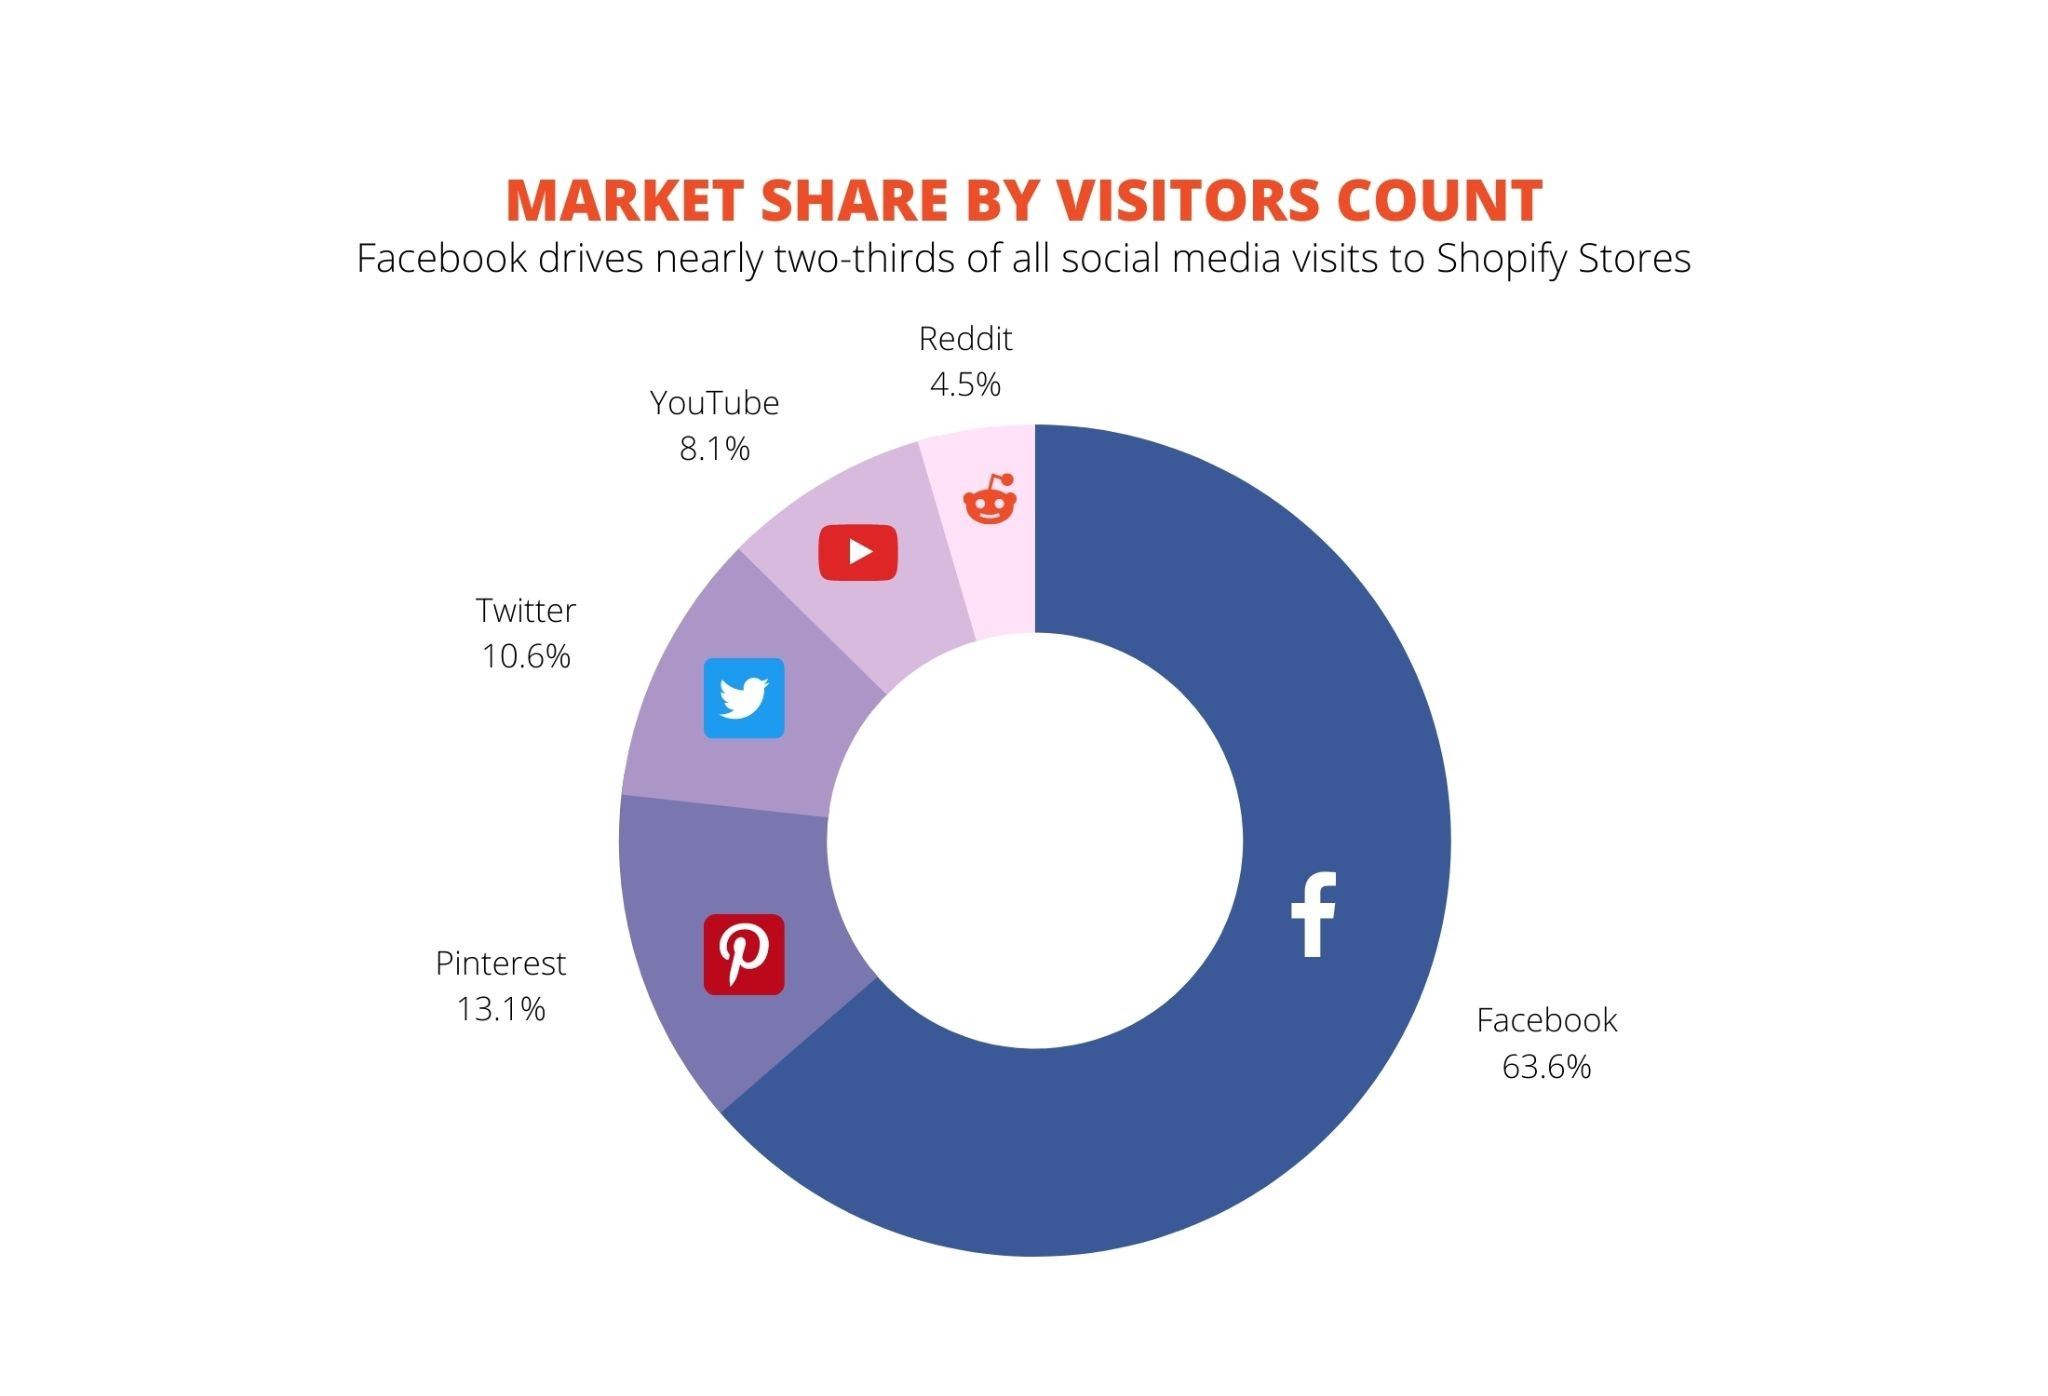 Social Media Market Share by Visitors Count